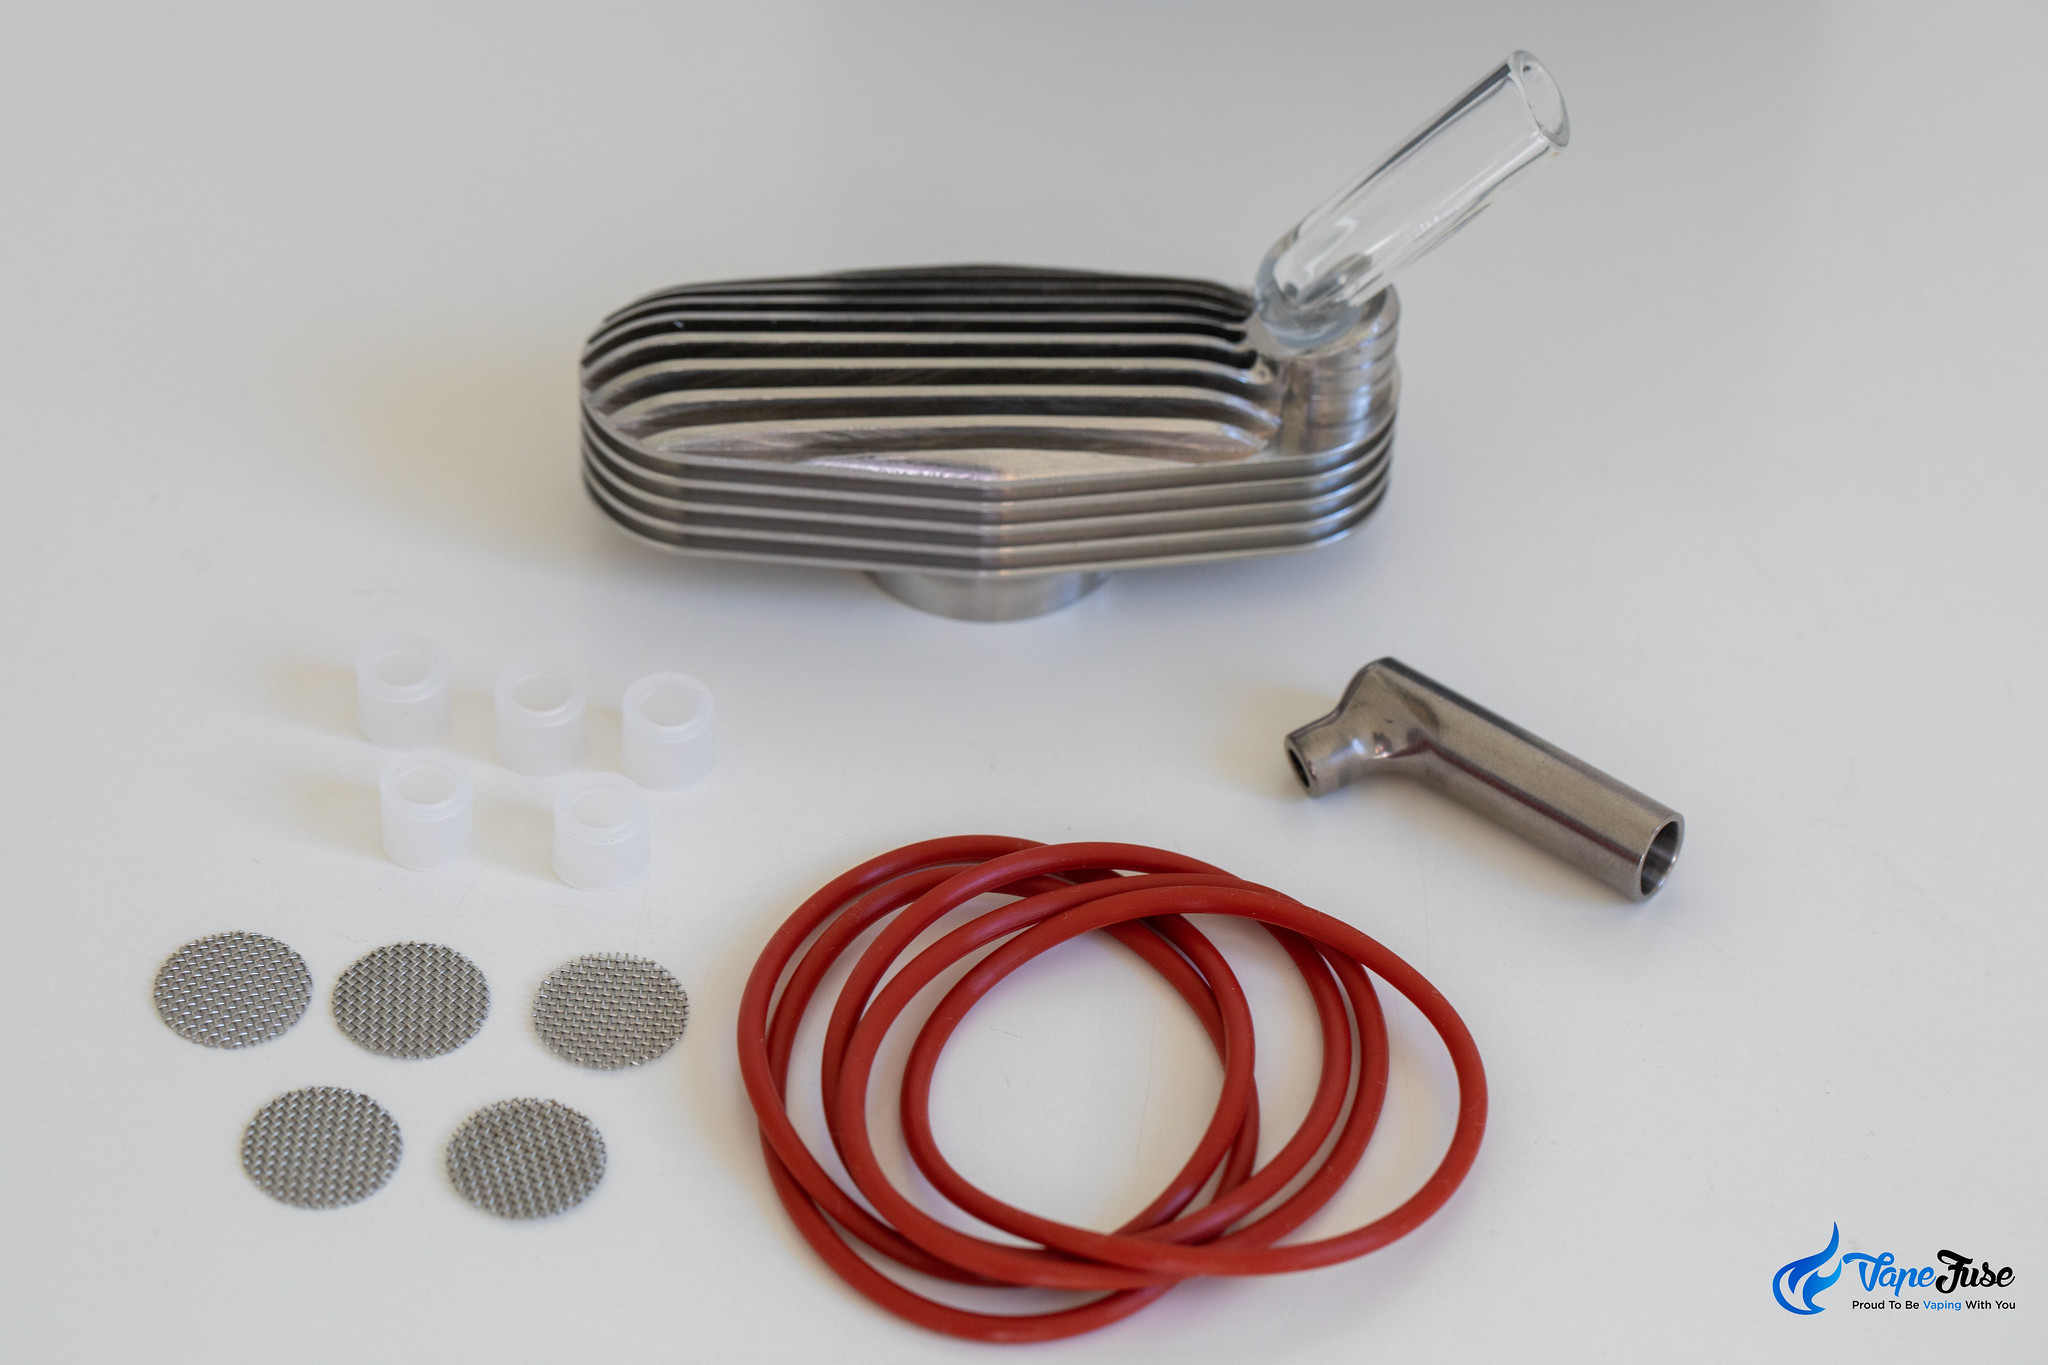 French Touch stainless steel cooling unit kit for Mighty